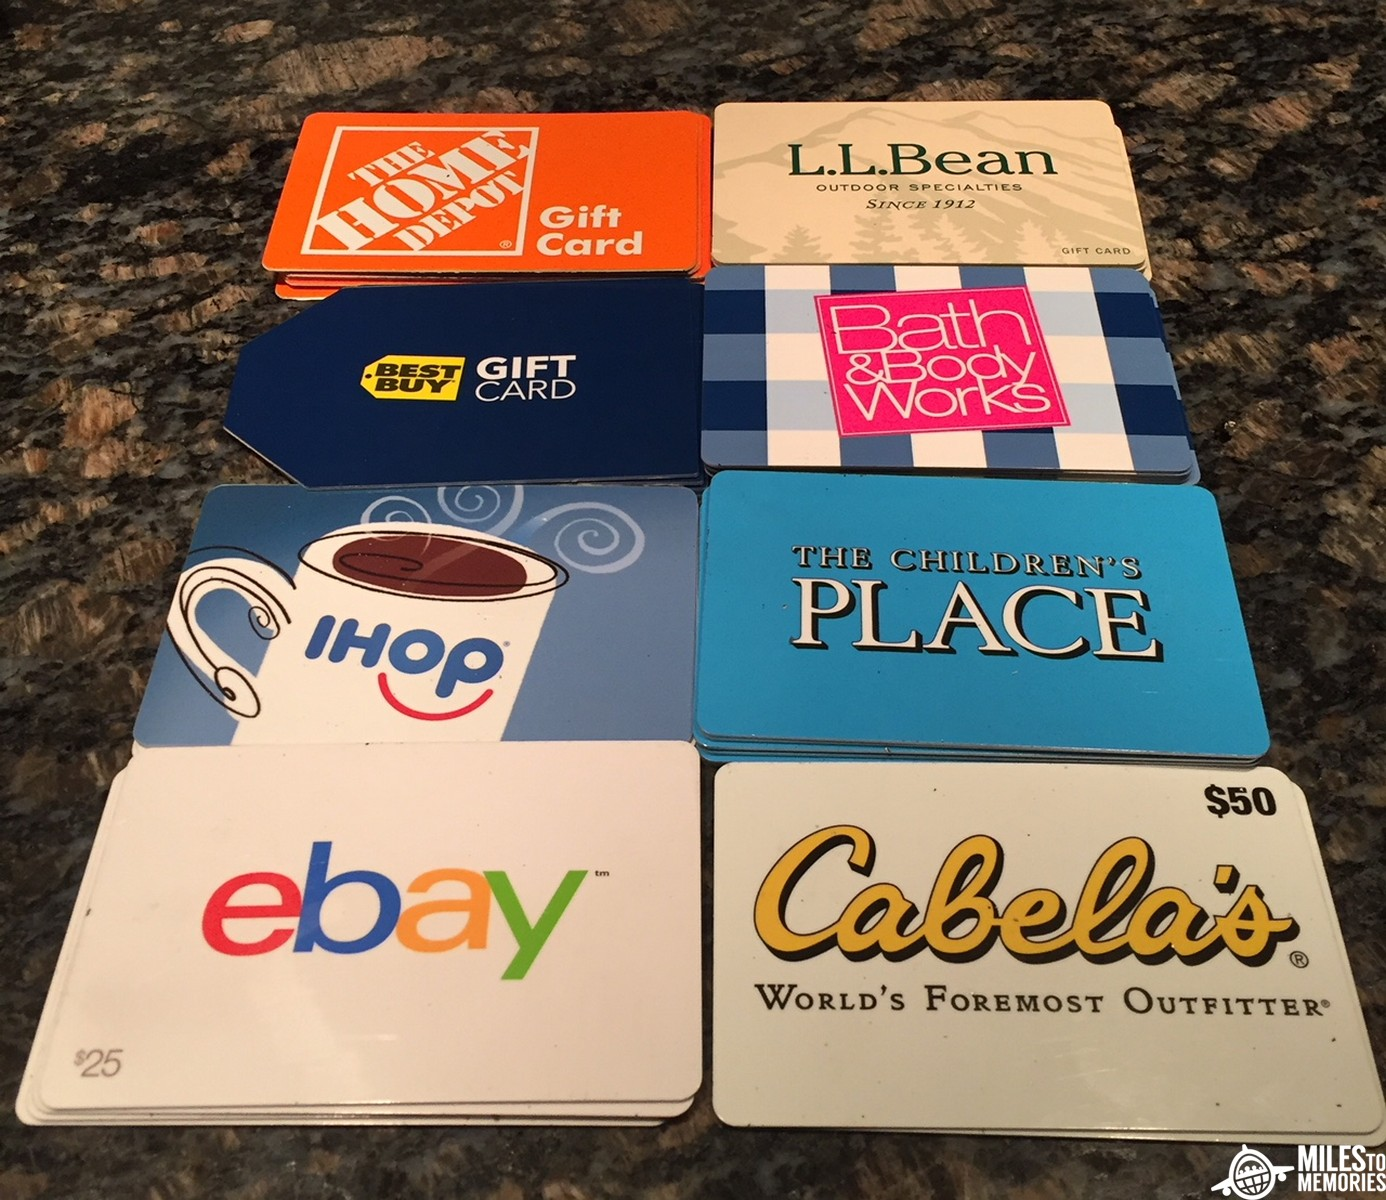 Kroger Gift Card Sale Results and Lessons Learned